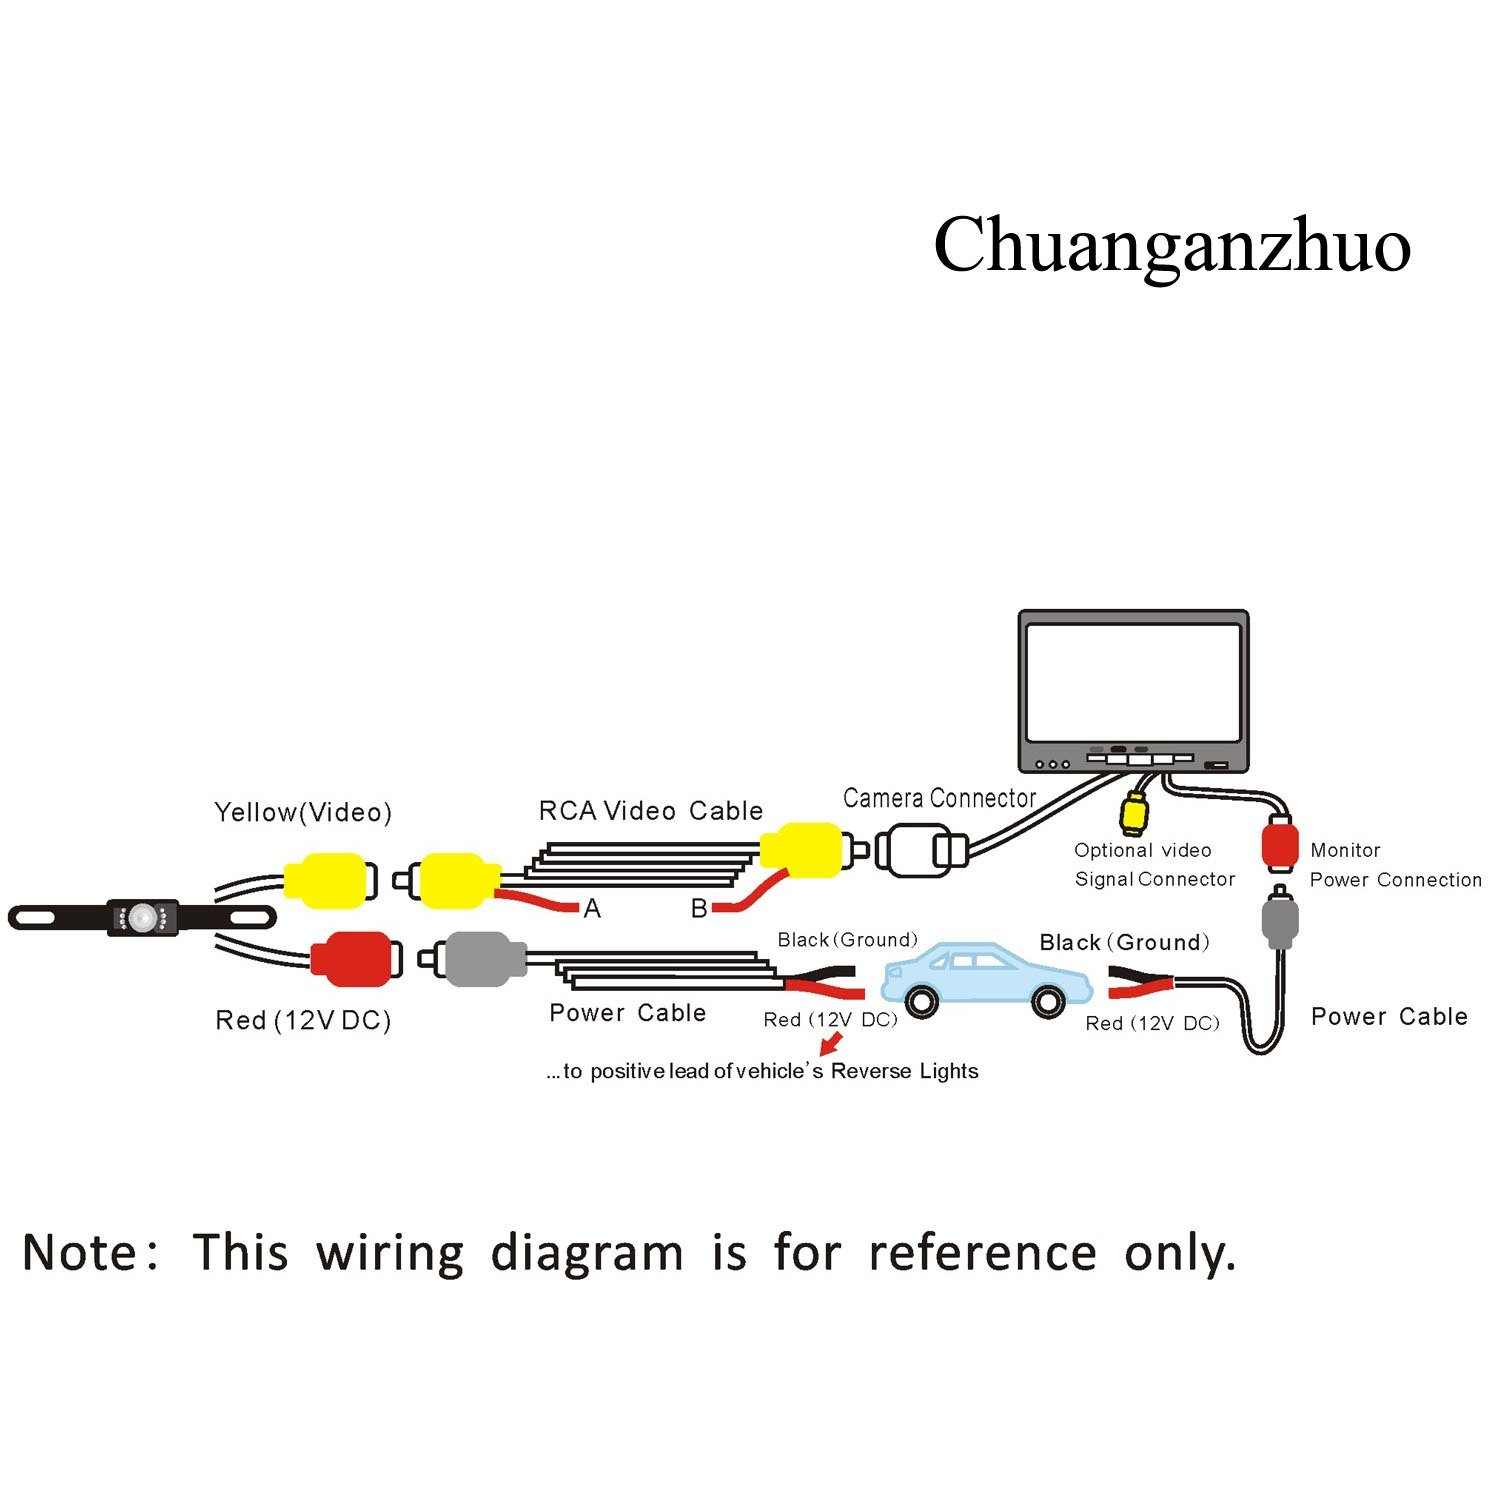 61eN9cMJzuL._SL1500_ amazon com backup camera and monitor kit, chuanganzhuo license wire diagram for backup camera at bayanpartner.co